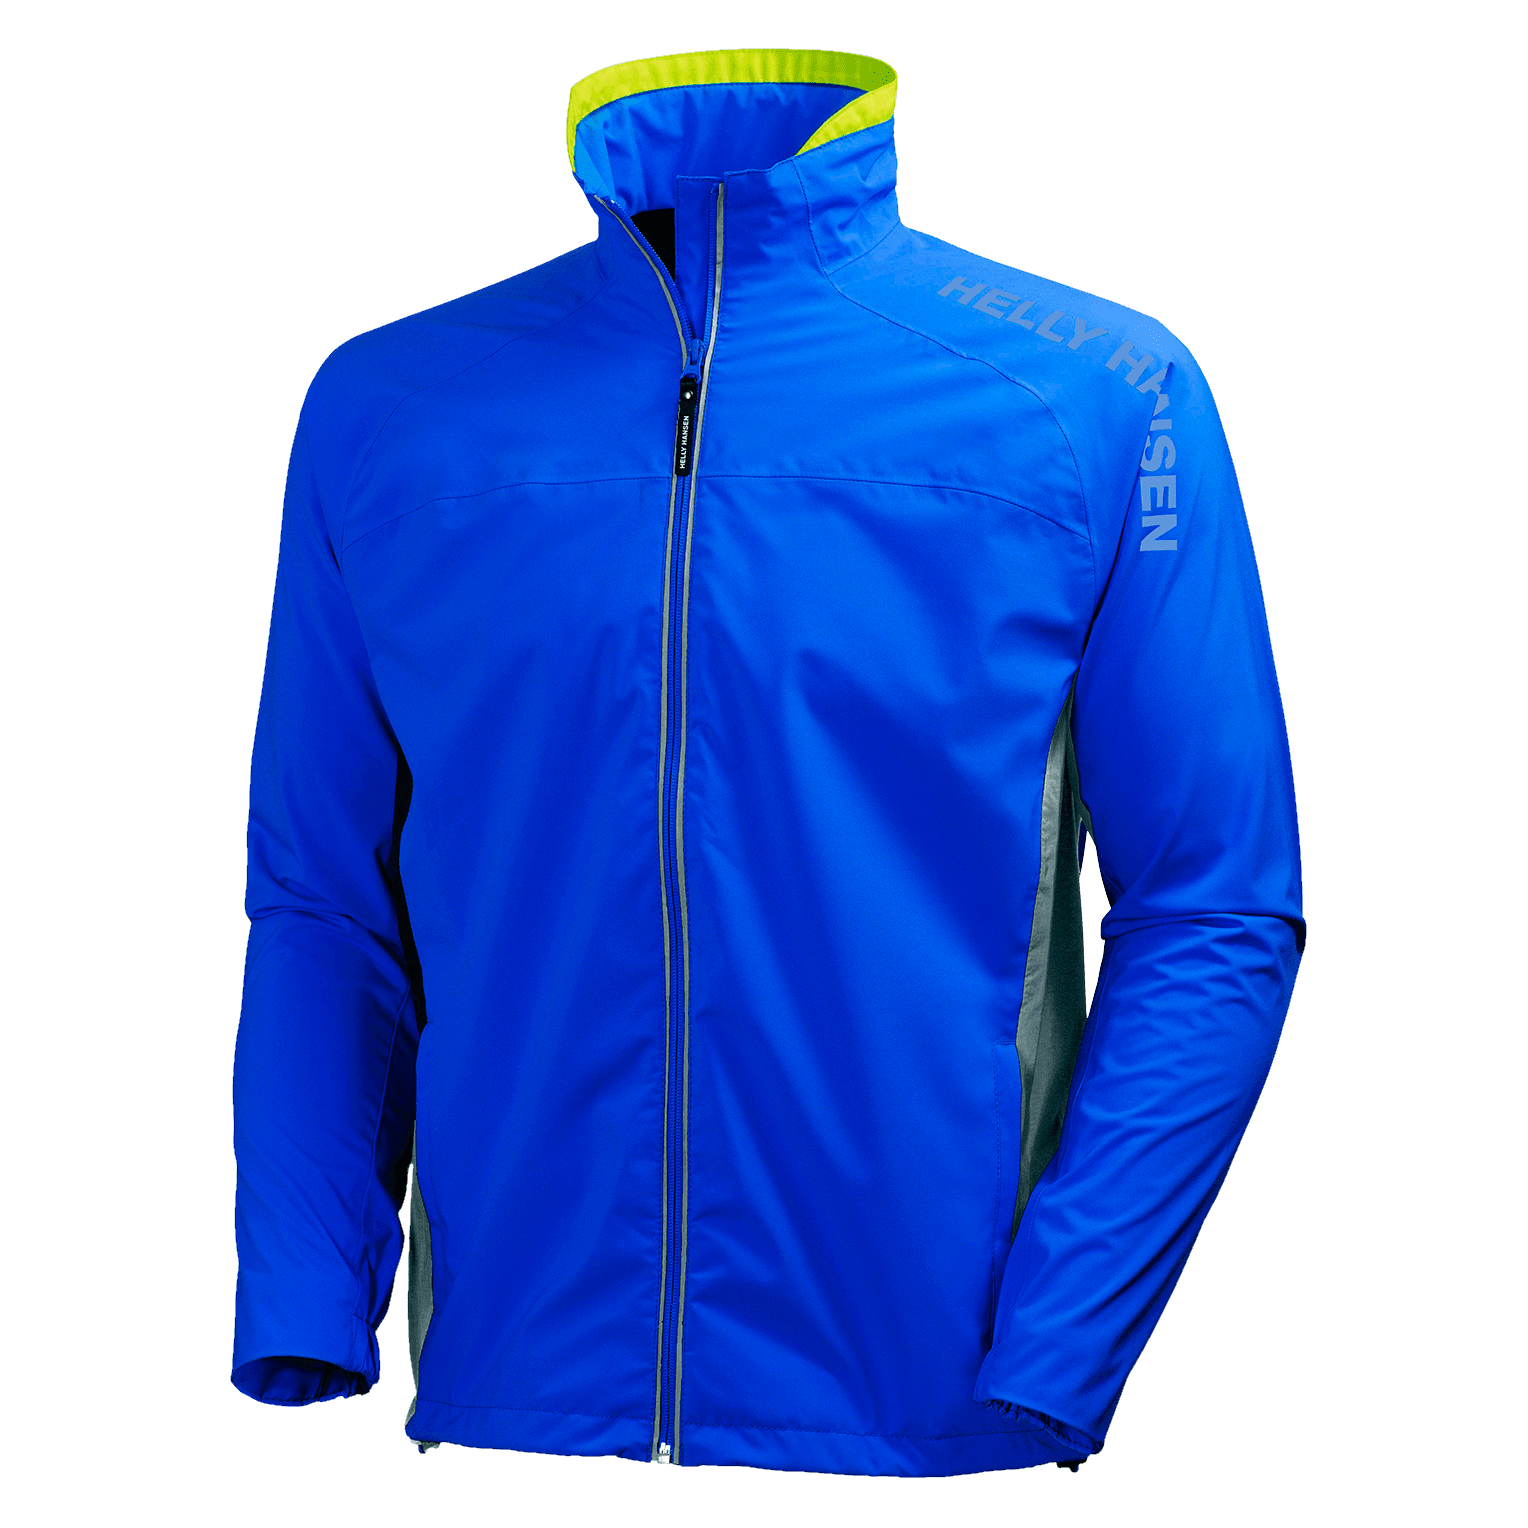 a66e0a15 Buy Helly Hansen HP Shore Jacket from Outnorth